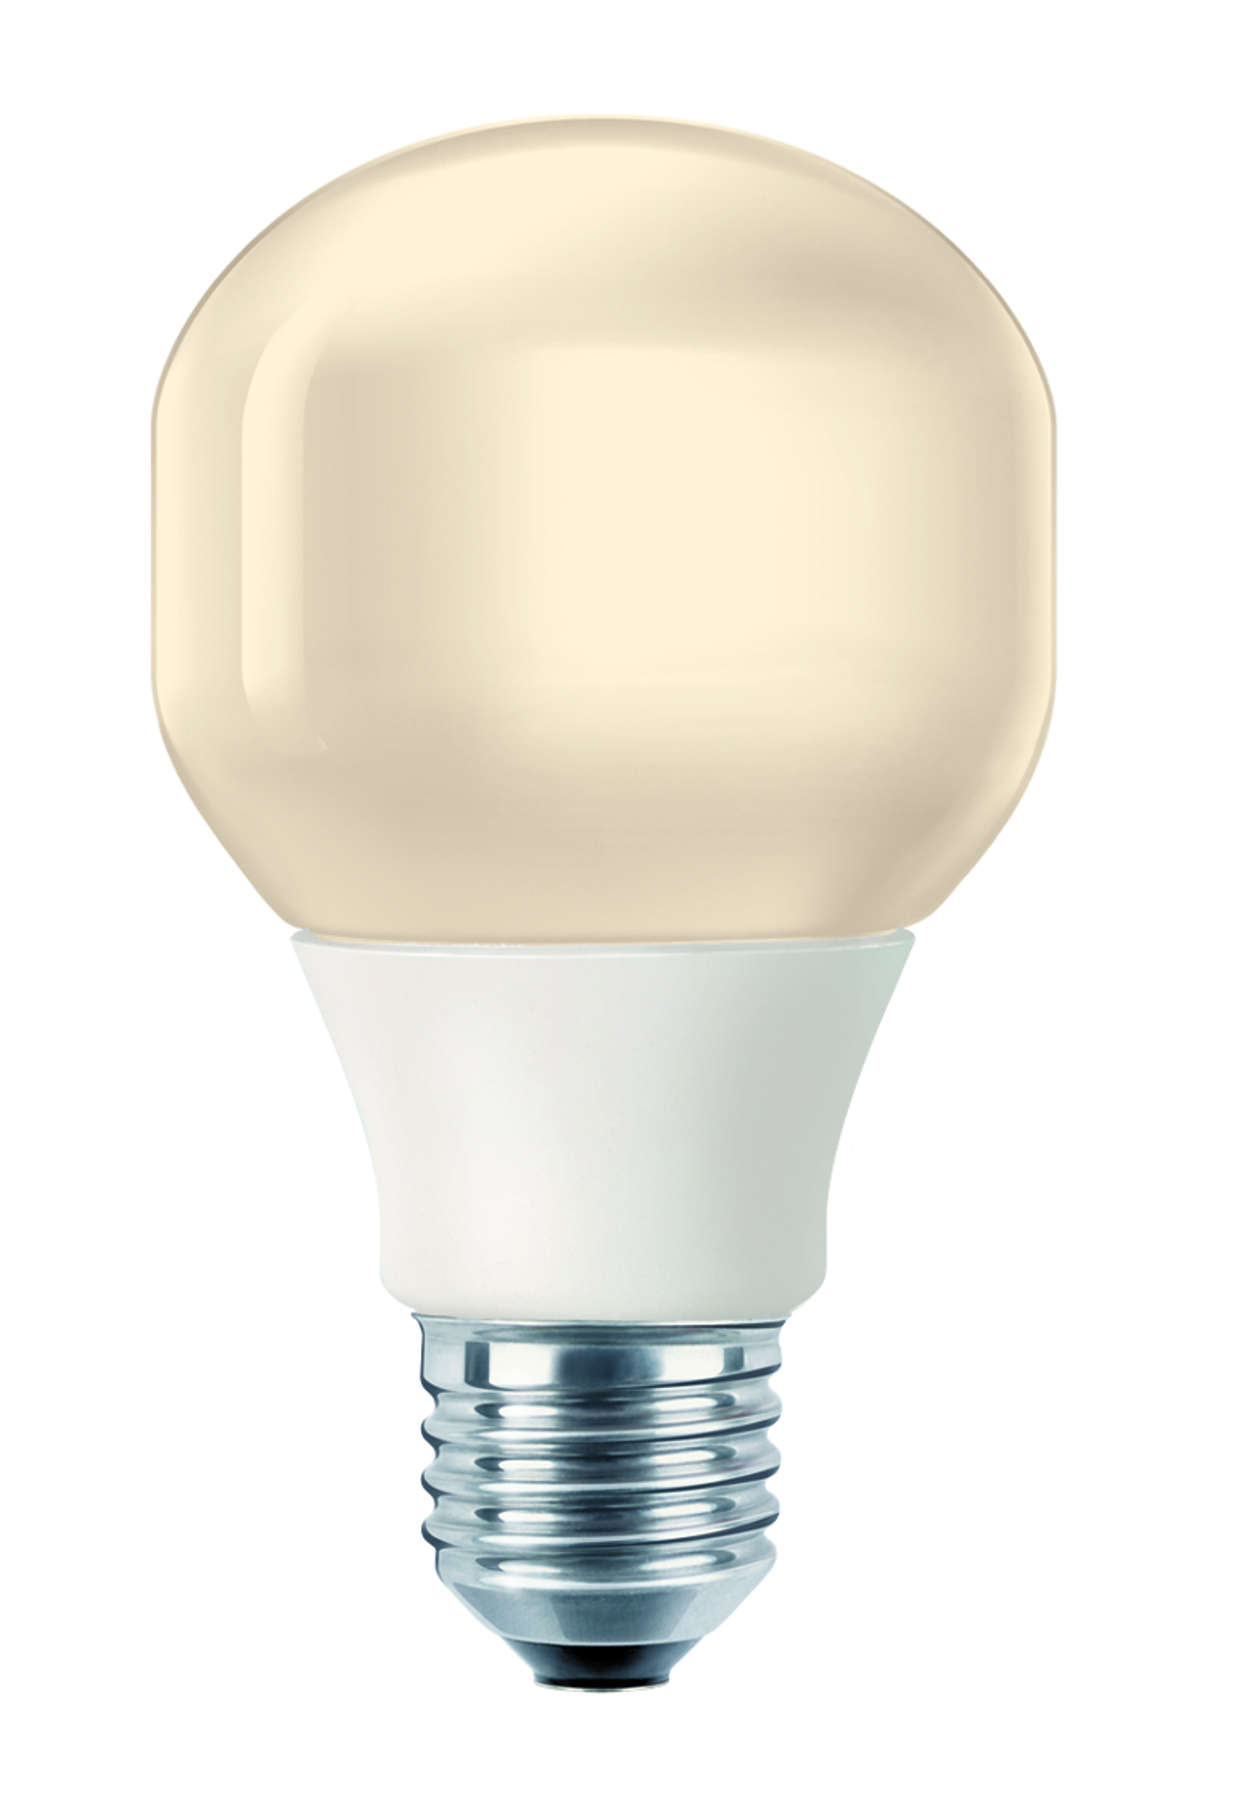 Soft and gentle ambiance light